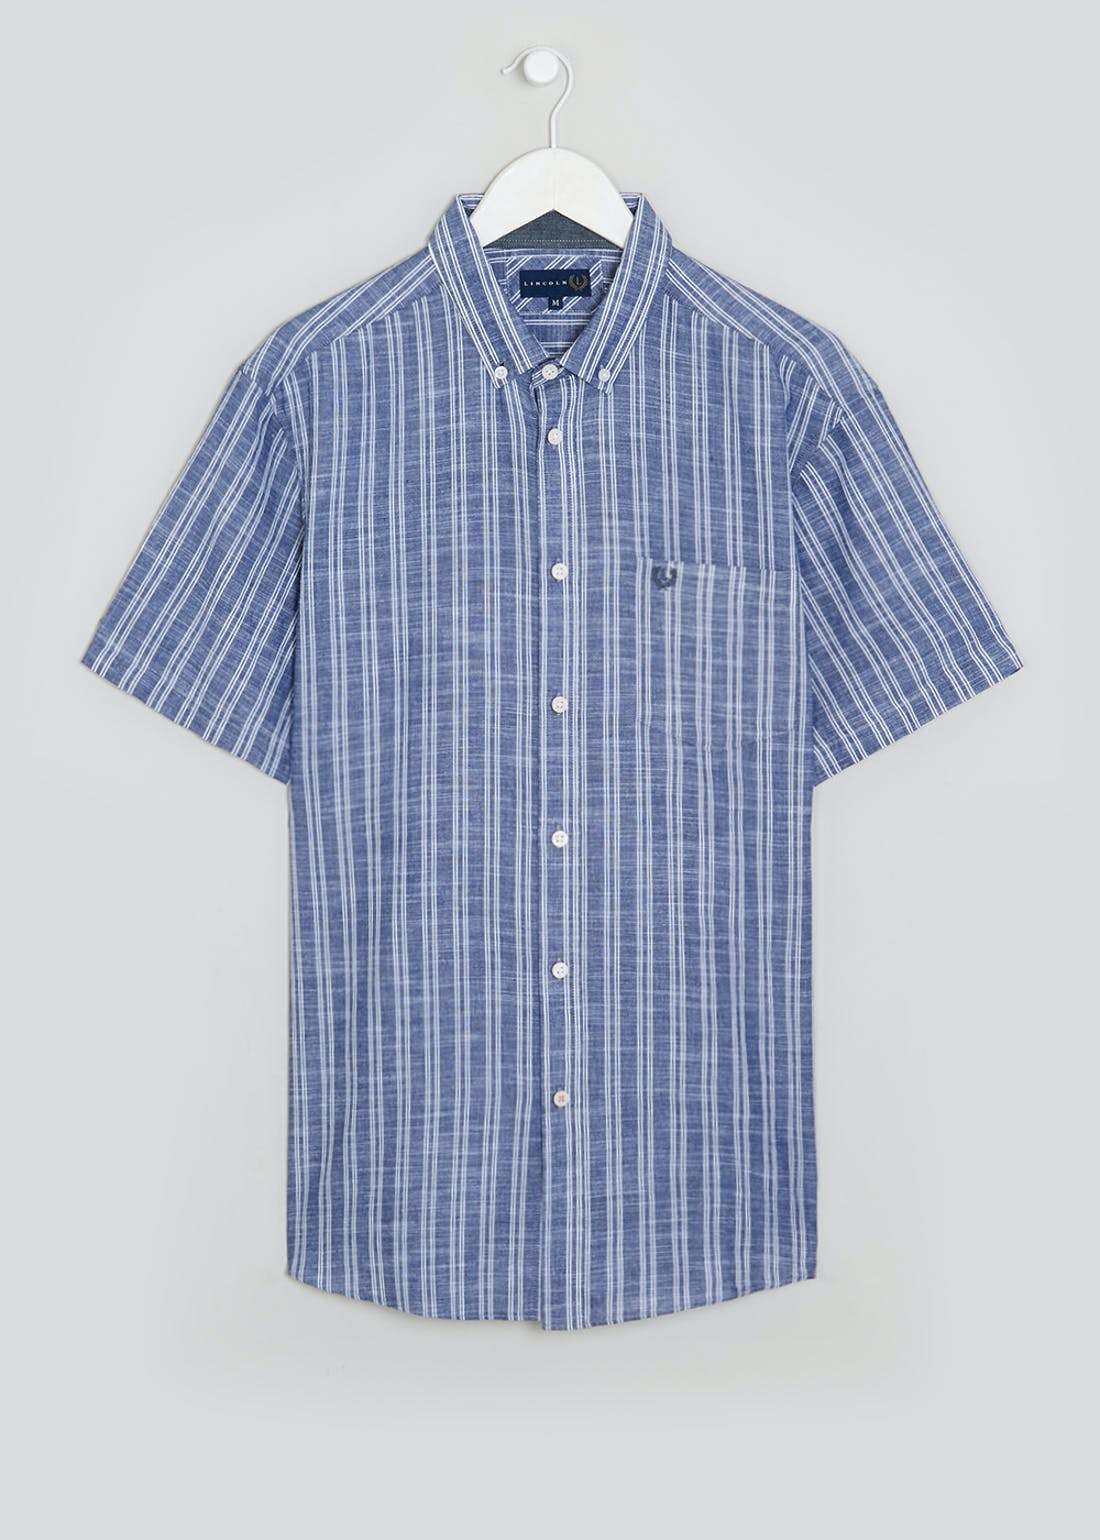 Lincoln Short Sleeve Slub Stripe Shirt